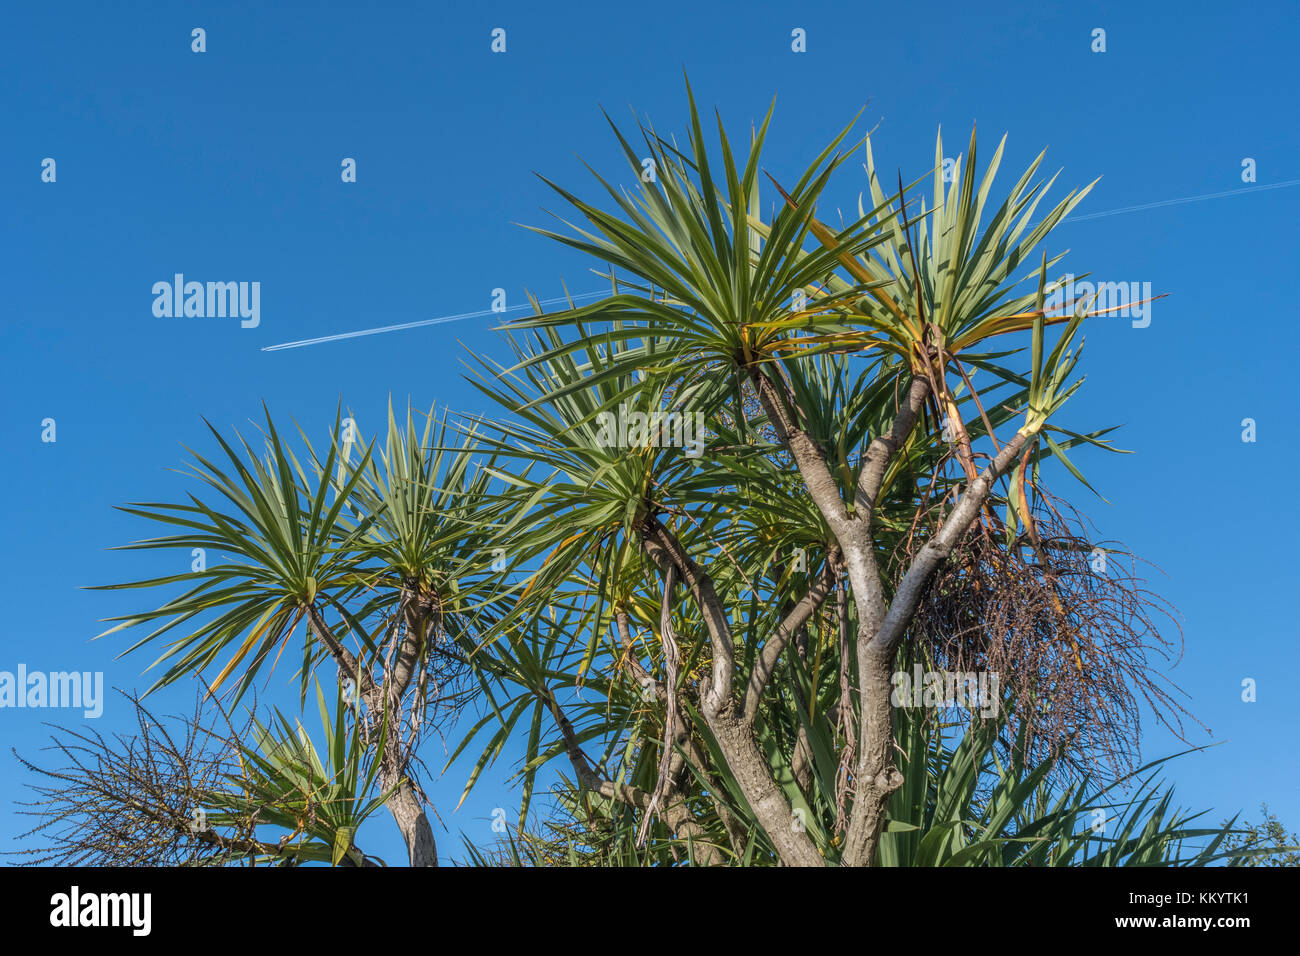 Cordyline australis palm set against bright blue sky in Cornwall, with vapour trails of an overhead passenger plane. - Stock Image